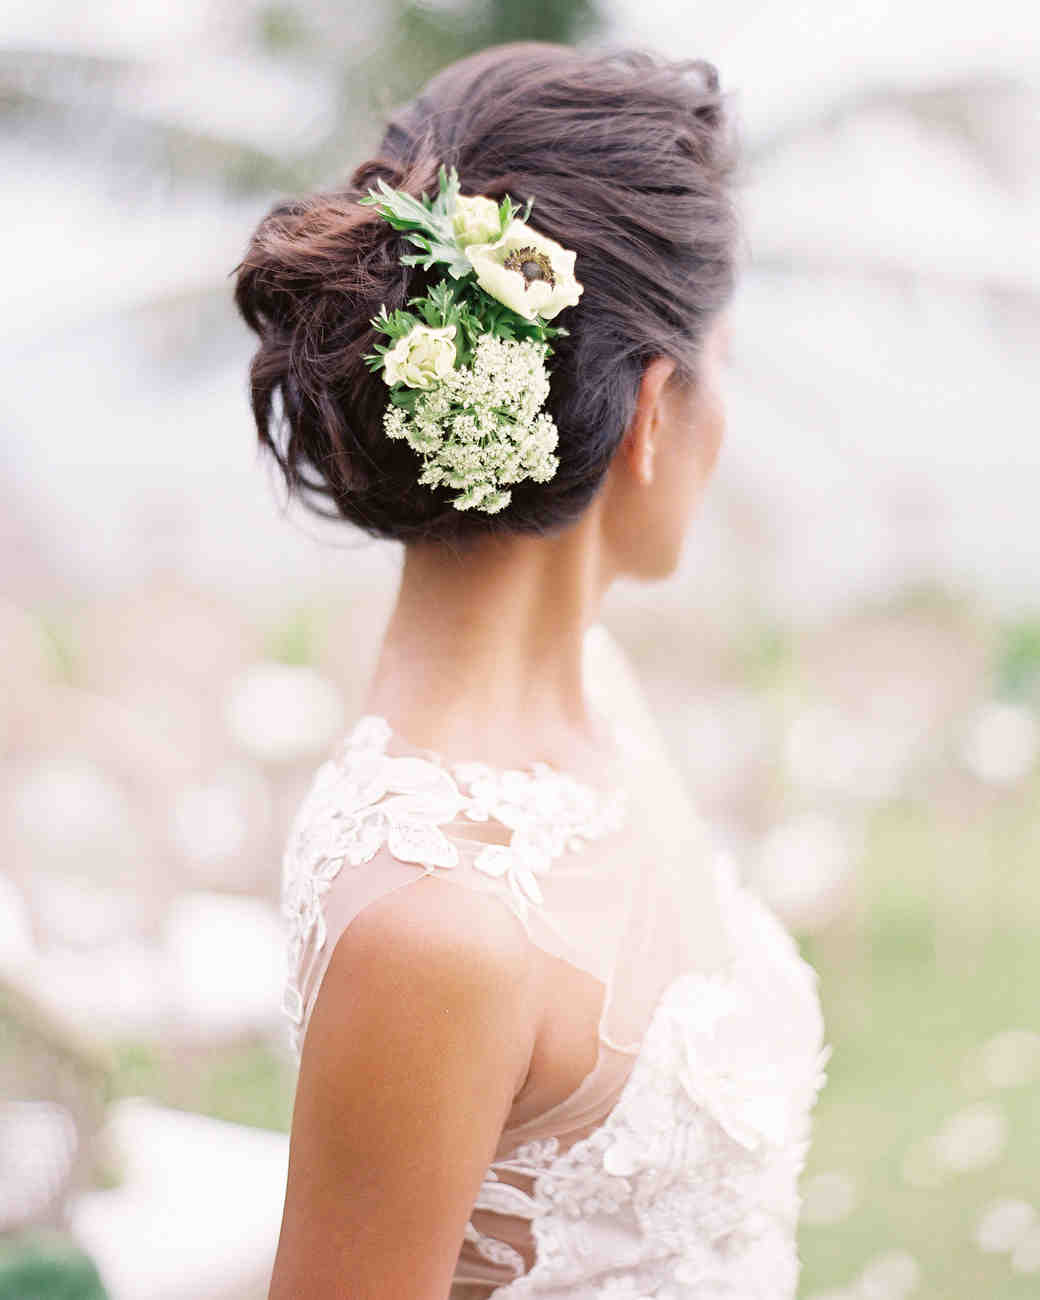 Wedding Hairstyles Photos: 20 Wedding Hairstyles With Flowers